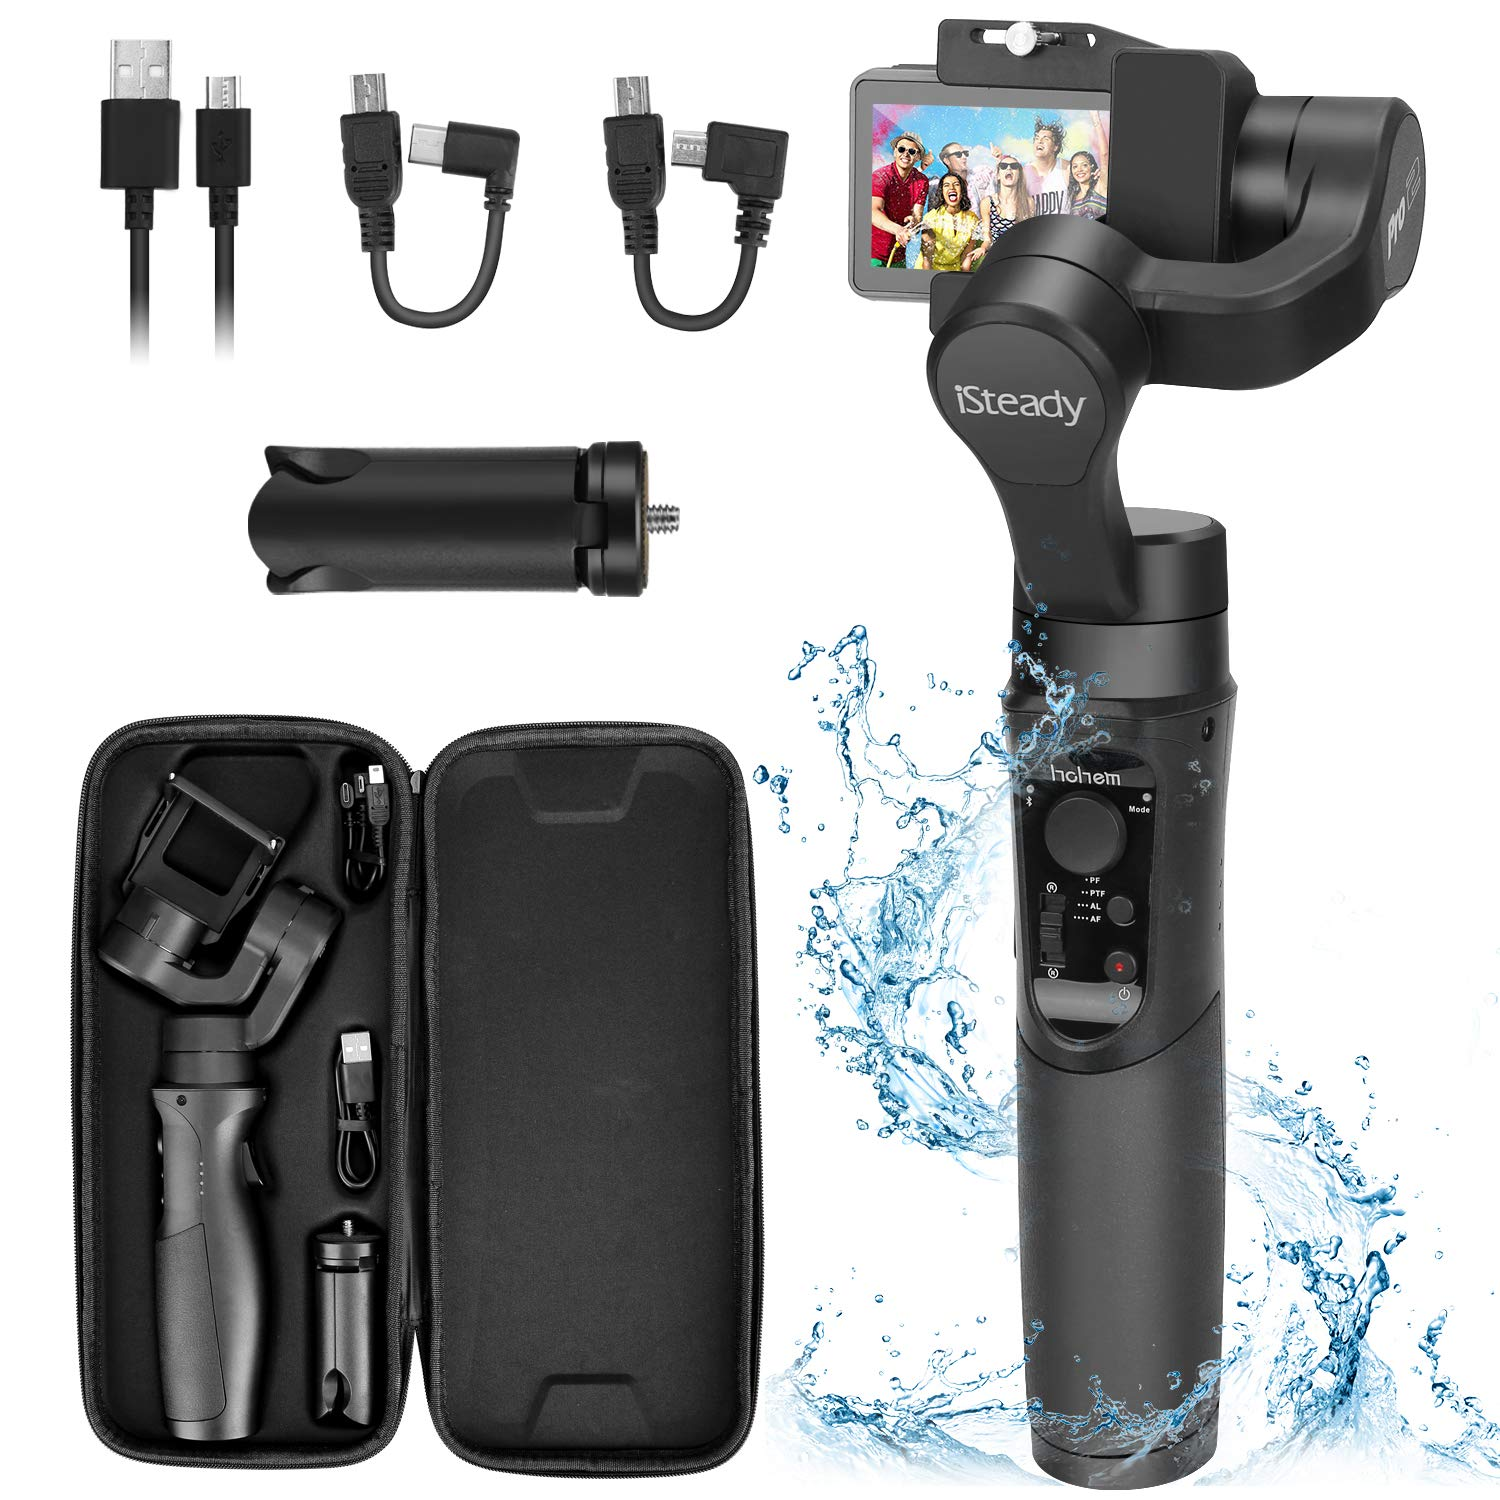 Hohem iSteady Pro 2 Water Splash Proof Gimbal Stabilizer